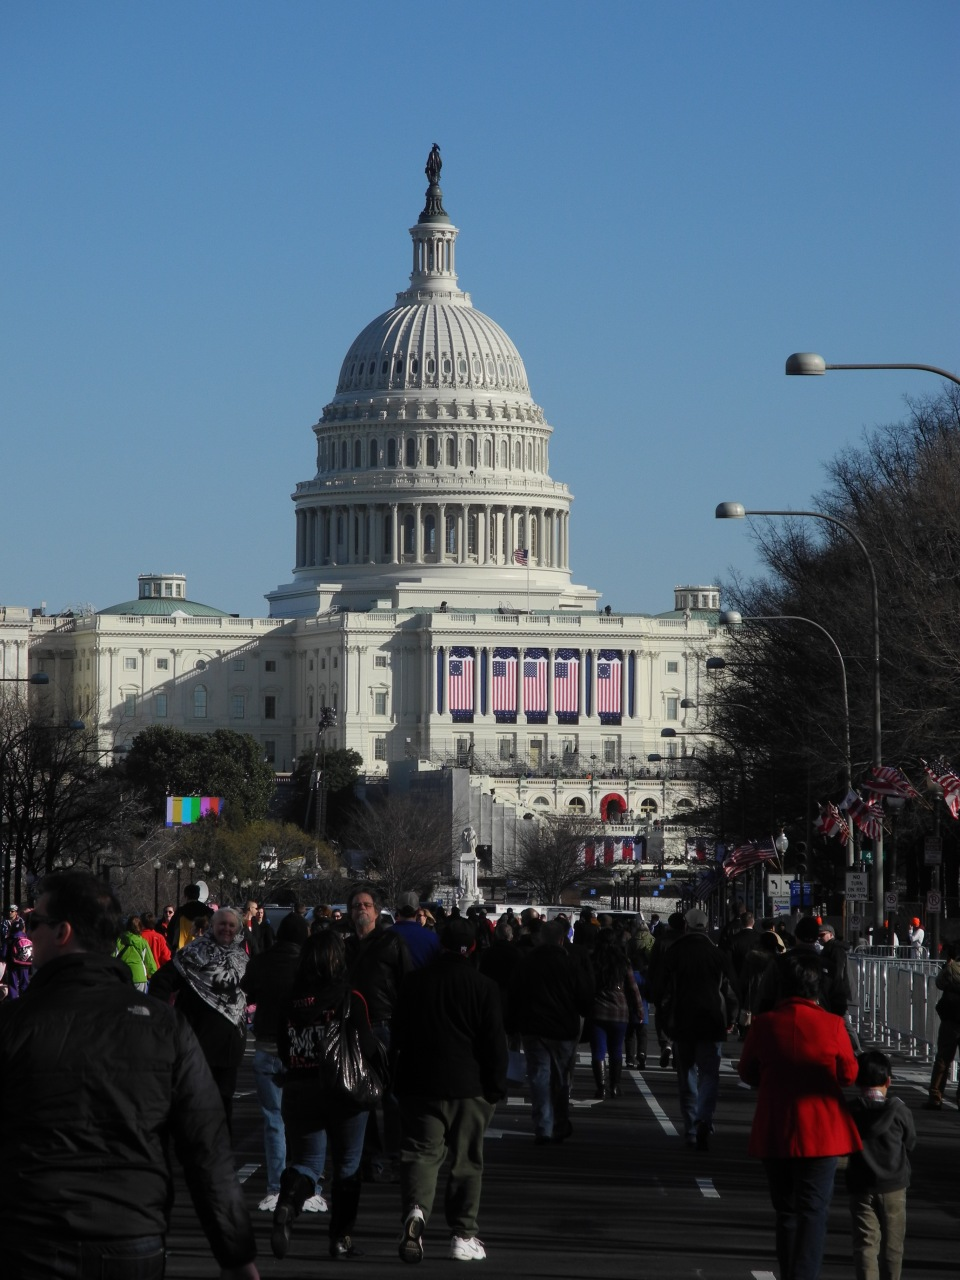 Flags on the Capitol